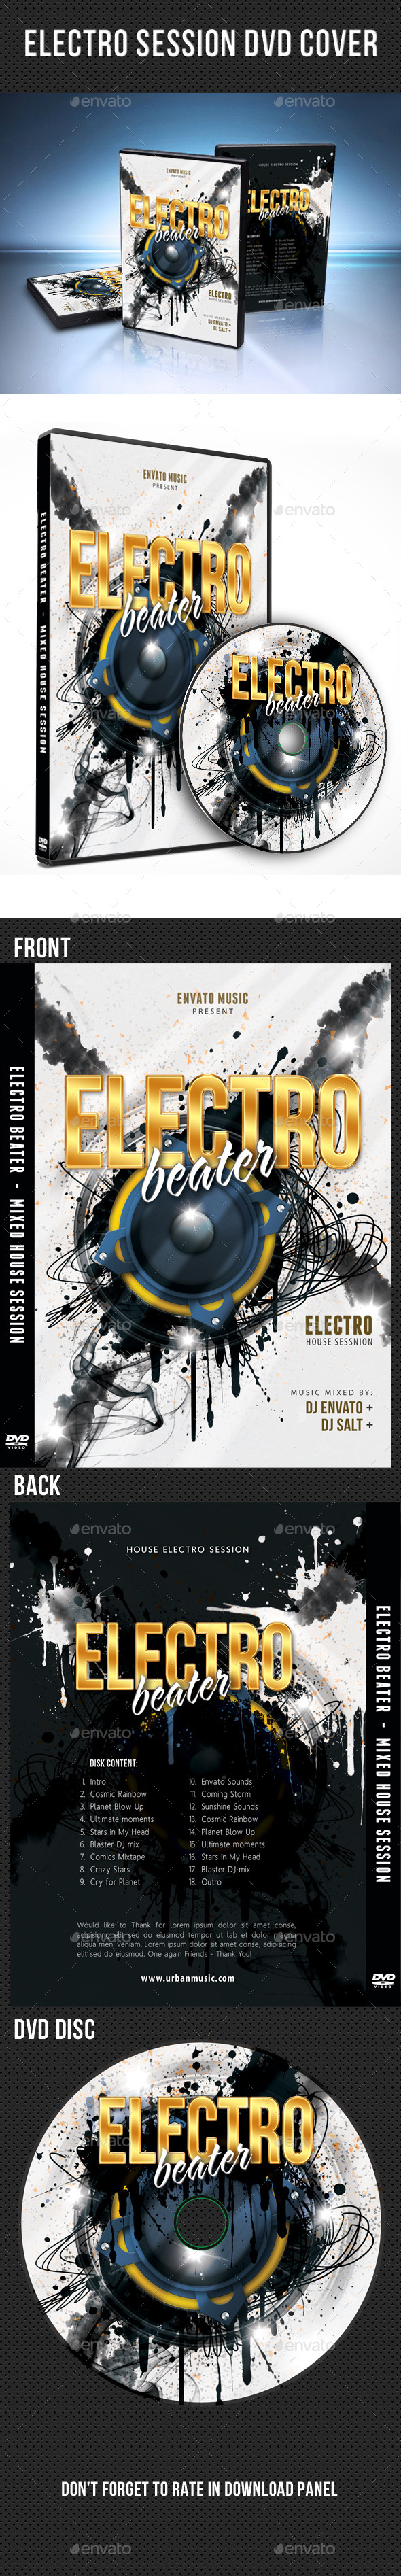 Electro Session DVD Cover Template V02